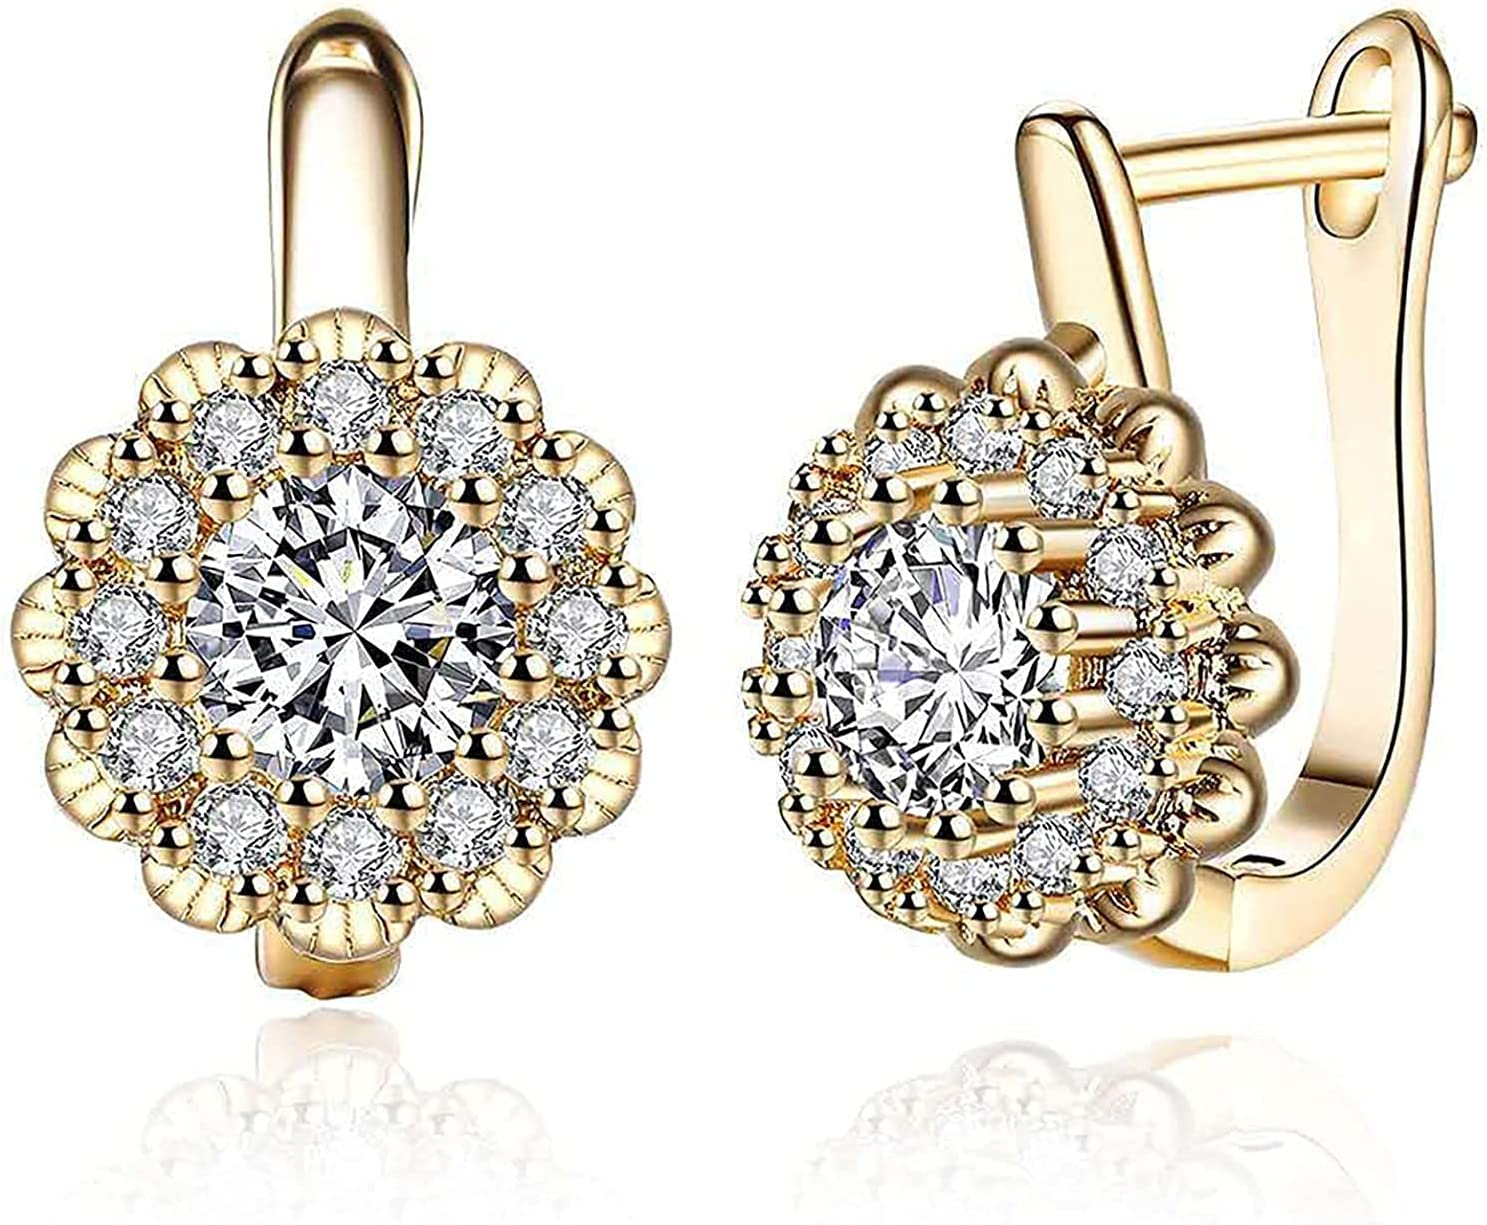 Earrings Free shipping Sets for Women Stud Sterling S Fees free Silver